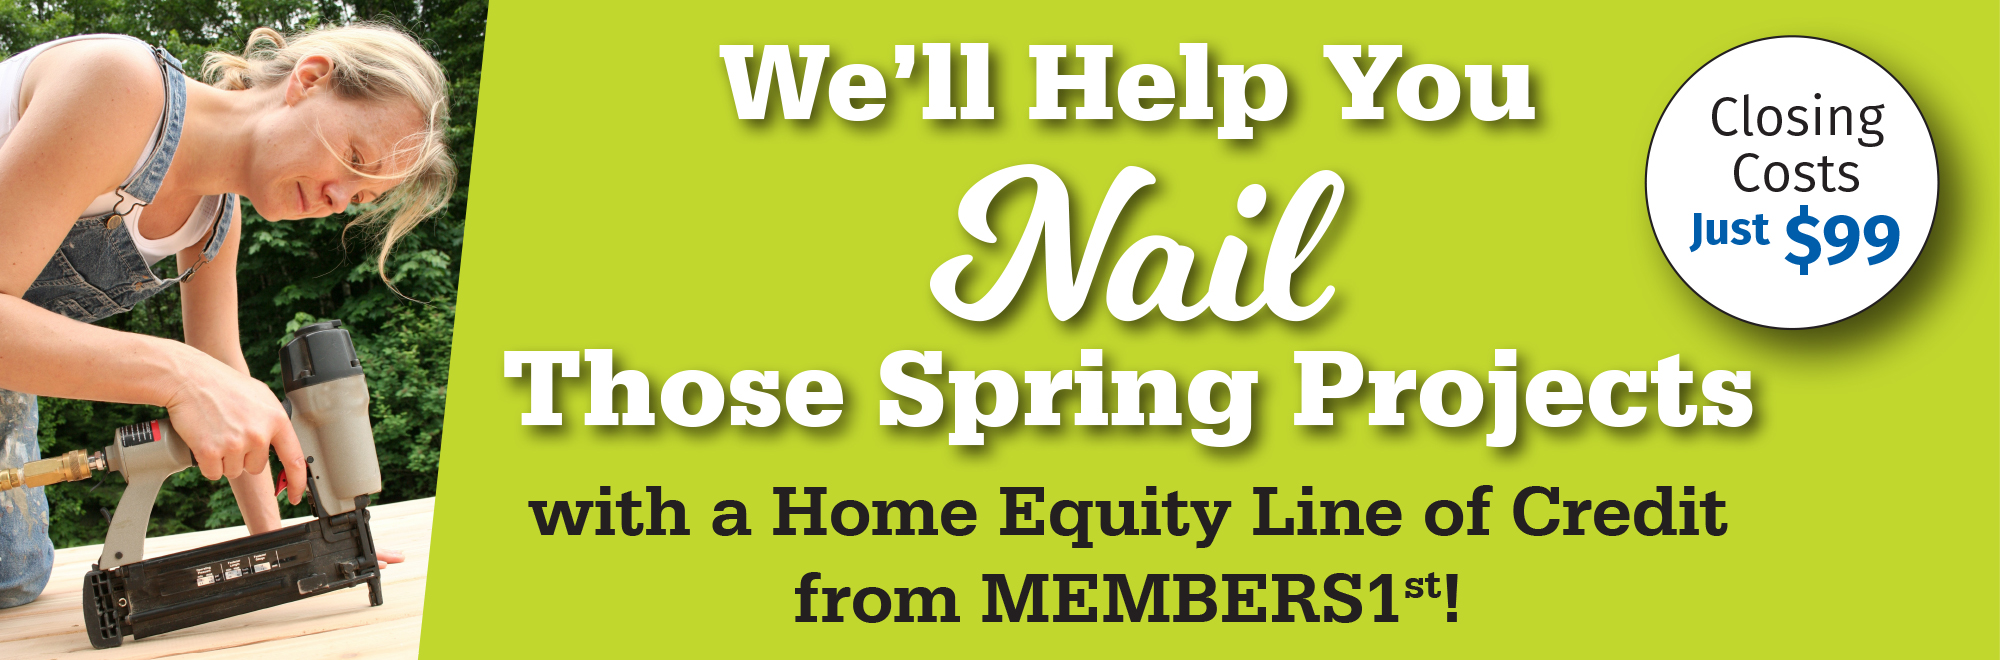 Nail your spring projects with a home equity line of credit from members1st!